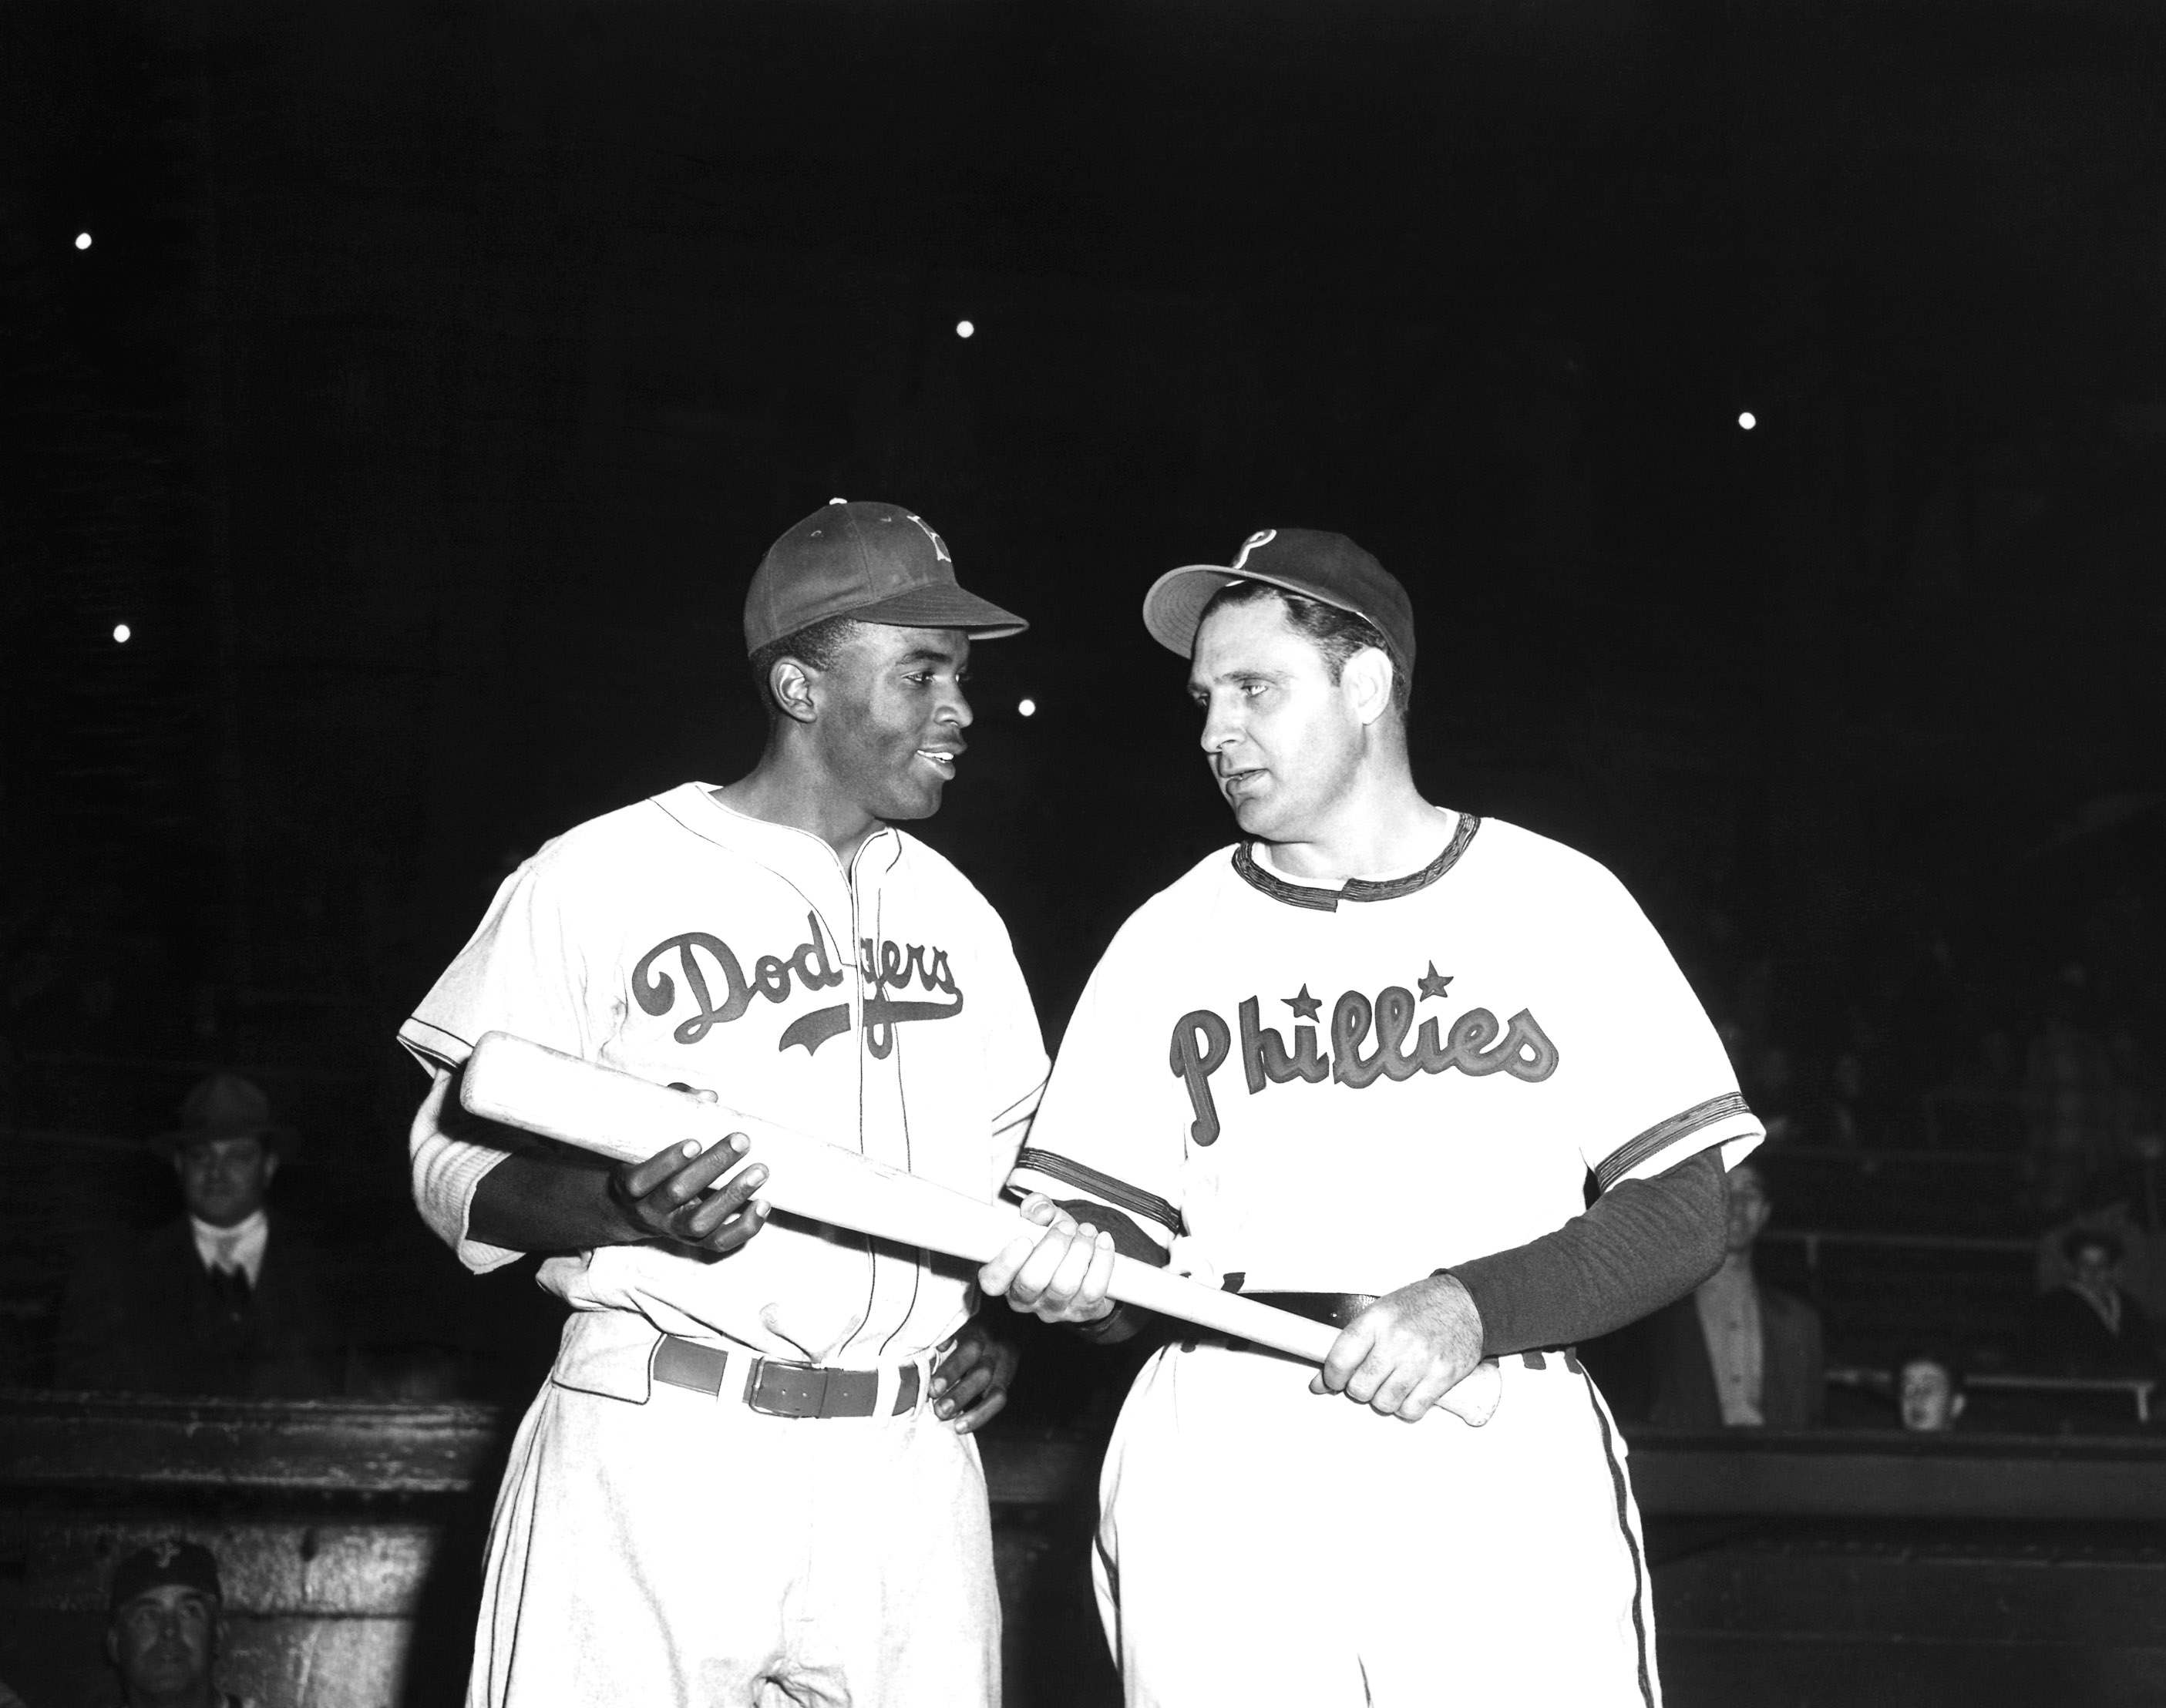 FILE - In a May 9, 1947 file photo, Jackie Robinson, left, Brooklyn Dodgers' first baseman, looks over the bat Philadelphia Phillies manager Ben Chapman uses during practice, as he prepared to play his first Philadelphia game for the Dodgers. The Philadel